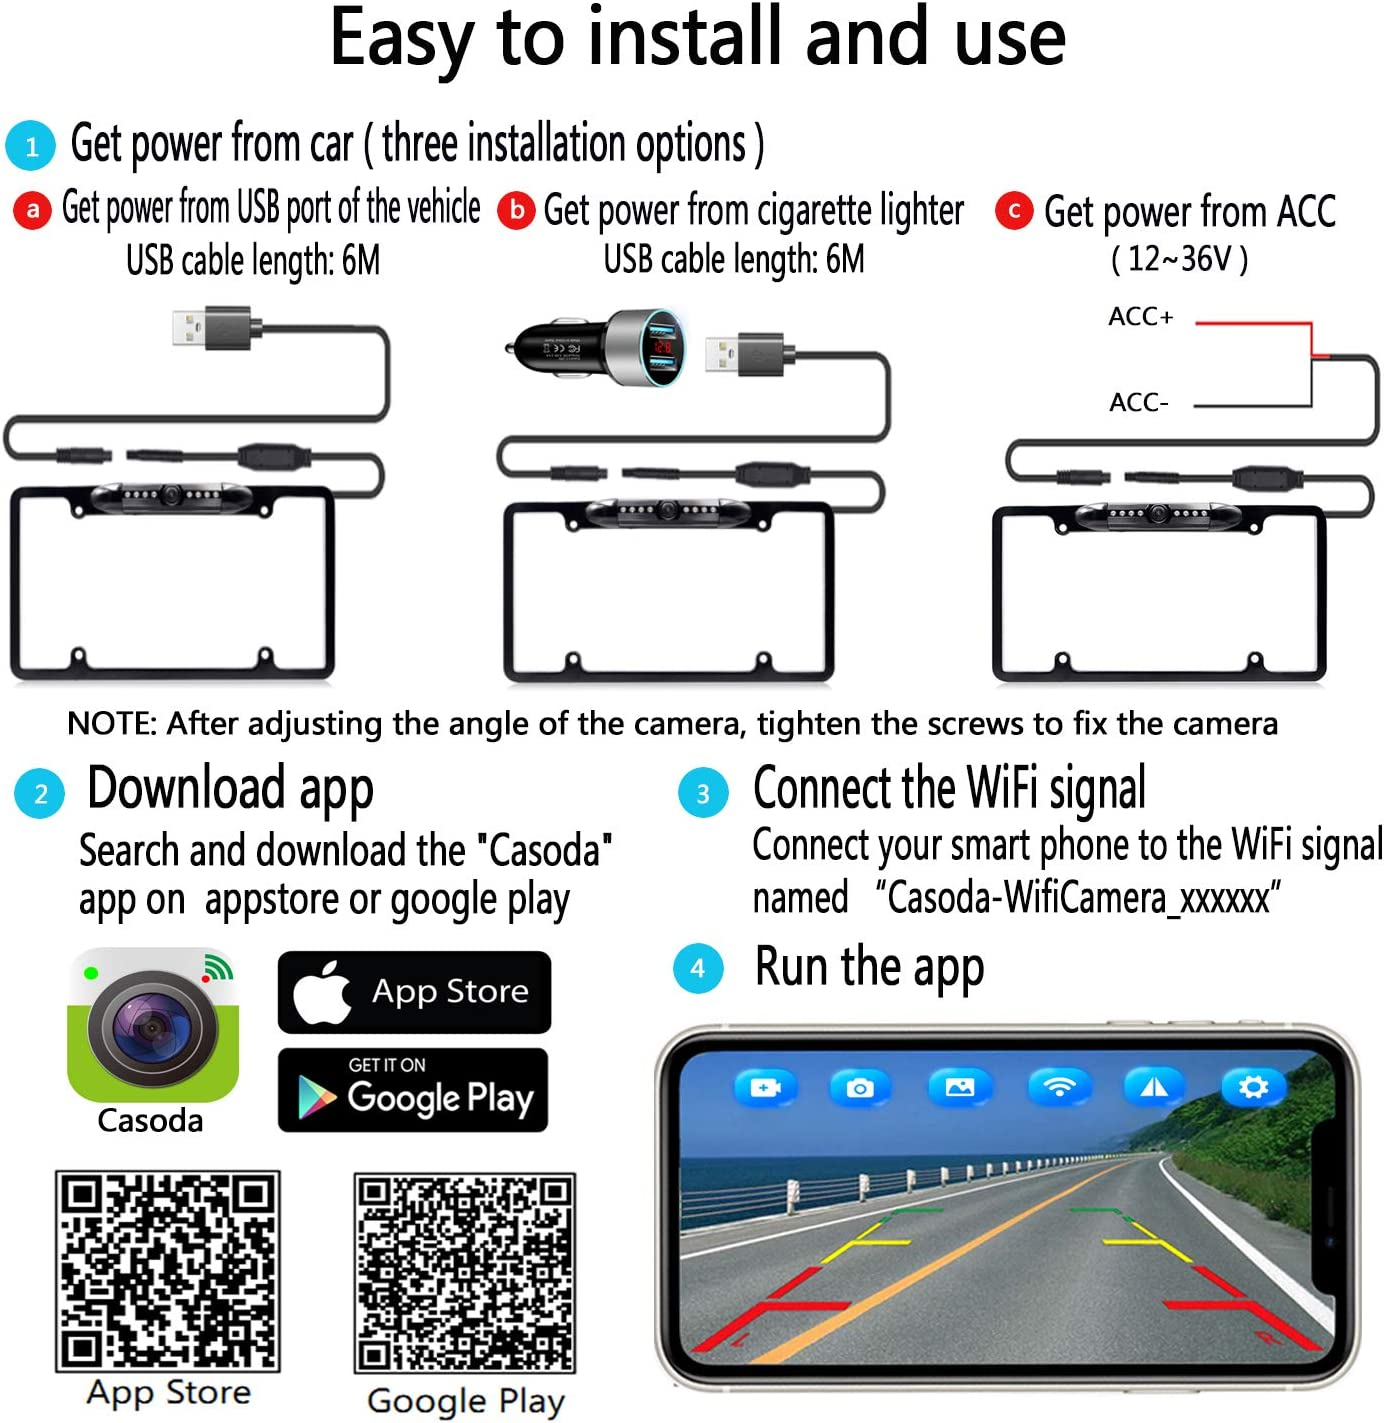 Casoda WiFi License Plate Backup Camera for iPhone and Android,Ultra Strong Signal Smooth Video Image Never Freezing Clear Picture Suitable for Cars Trucks Trailers SUVs Pickups Easy to Install